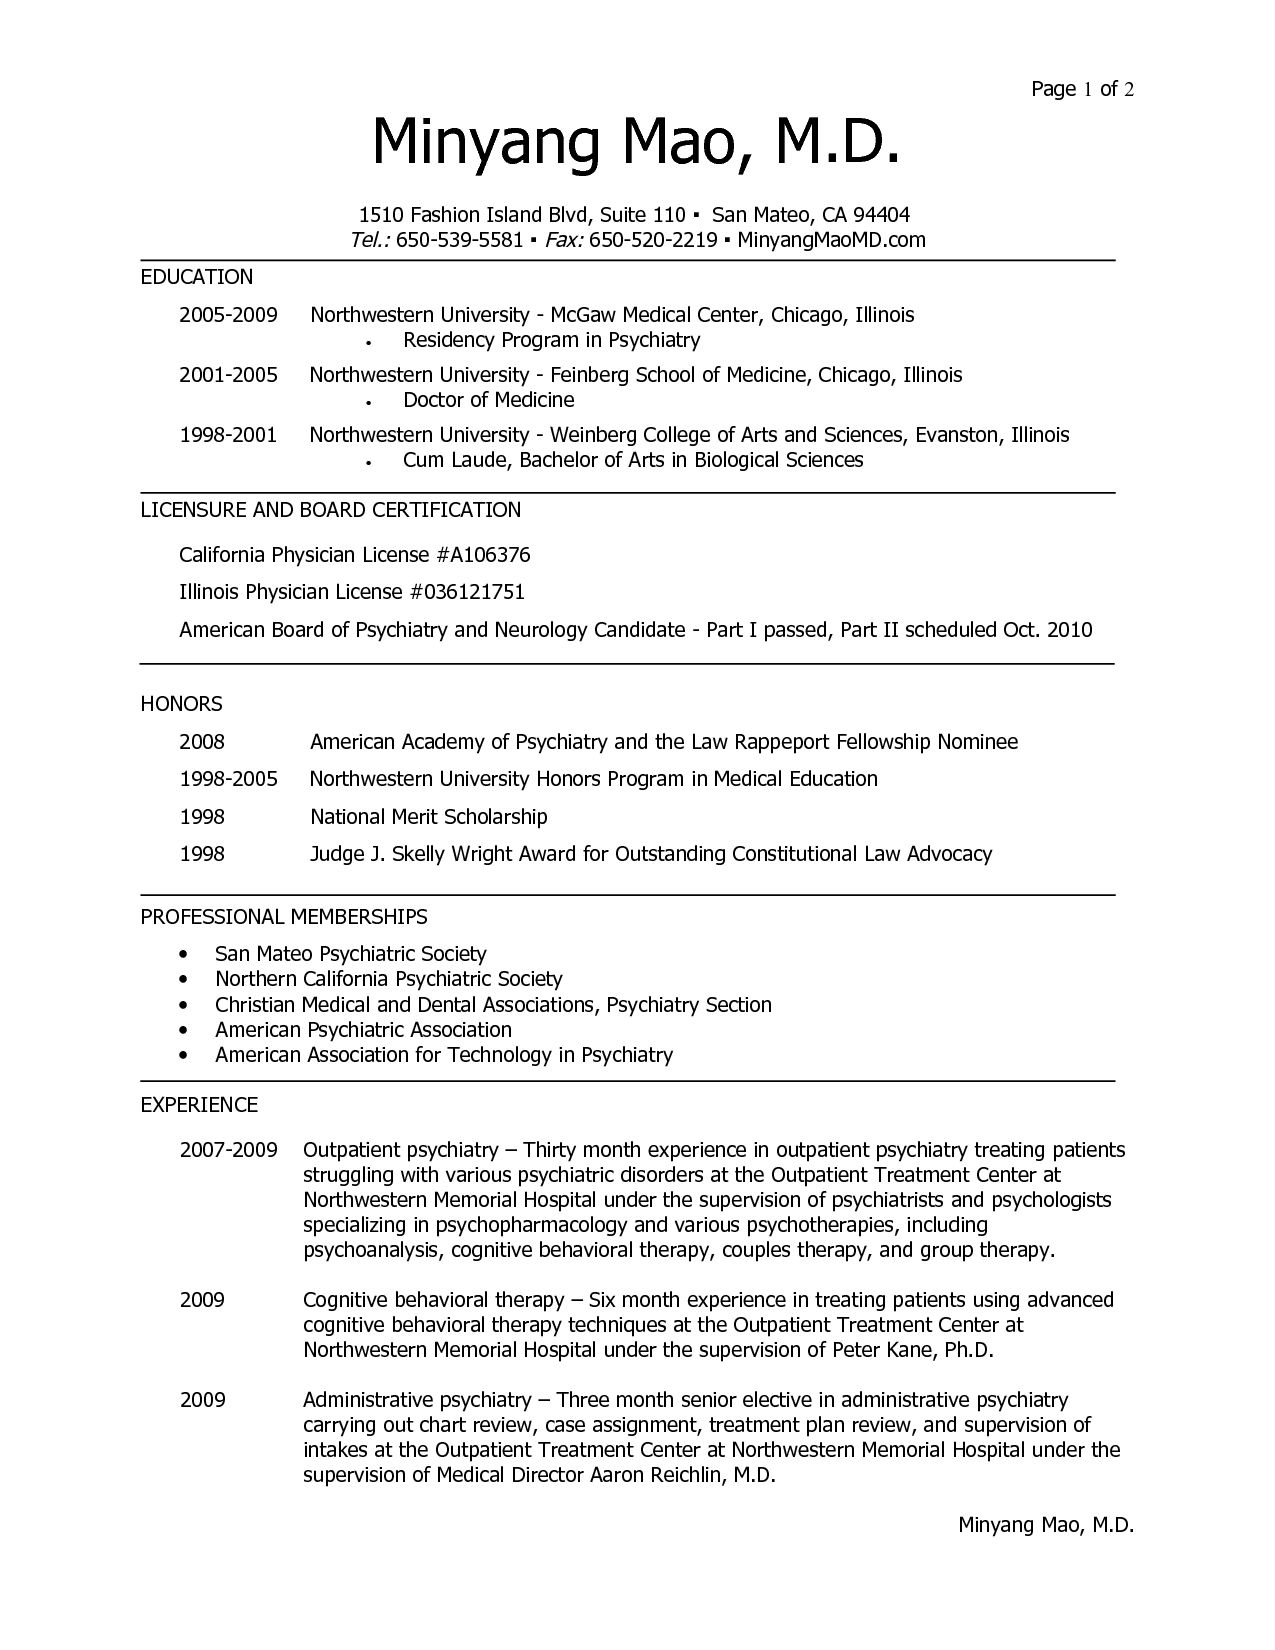 Medical School Resume Medical School Resume Template Medical School Resume Example